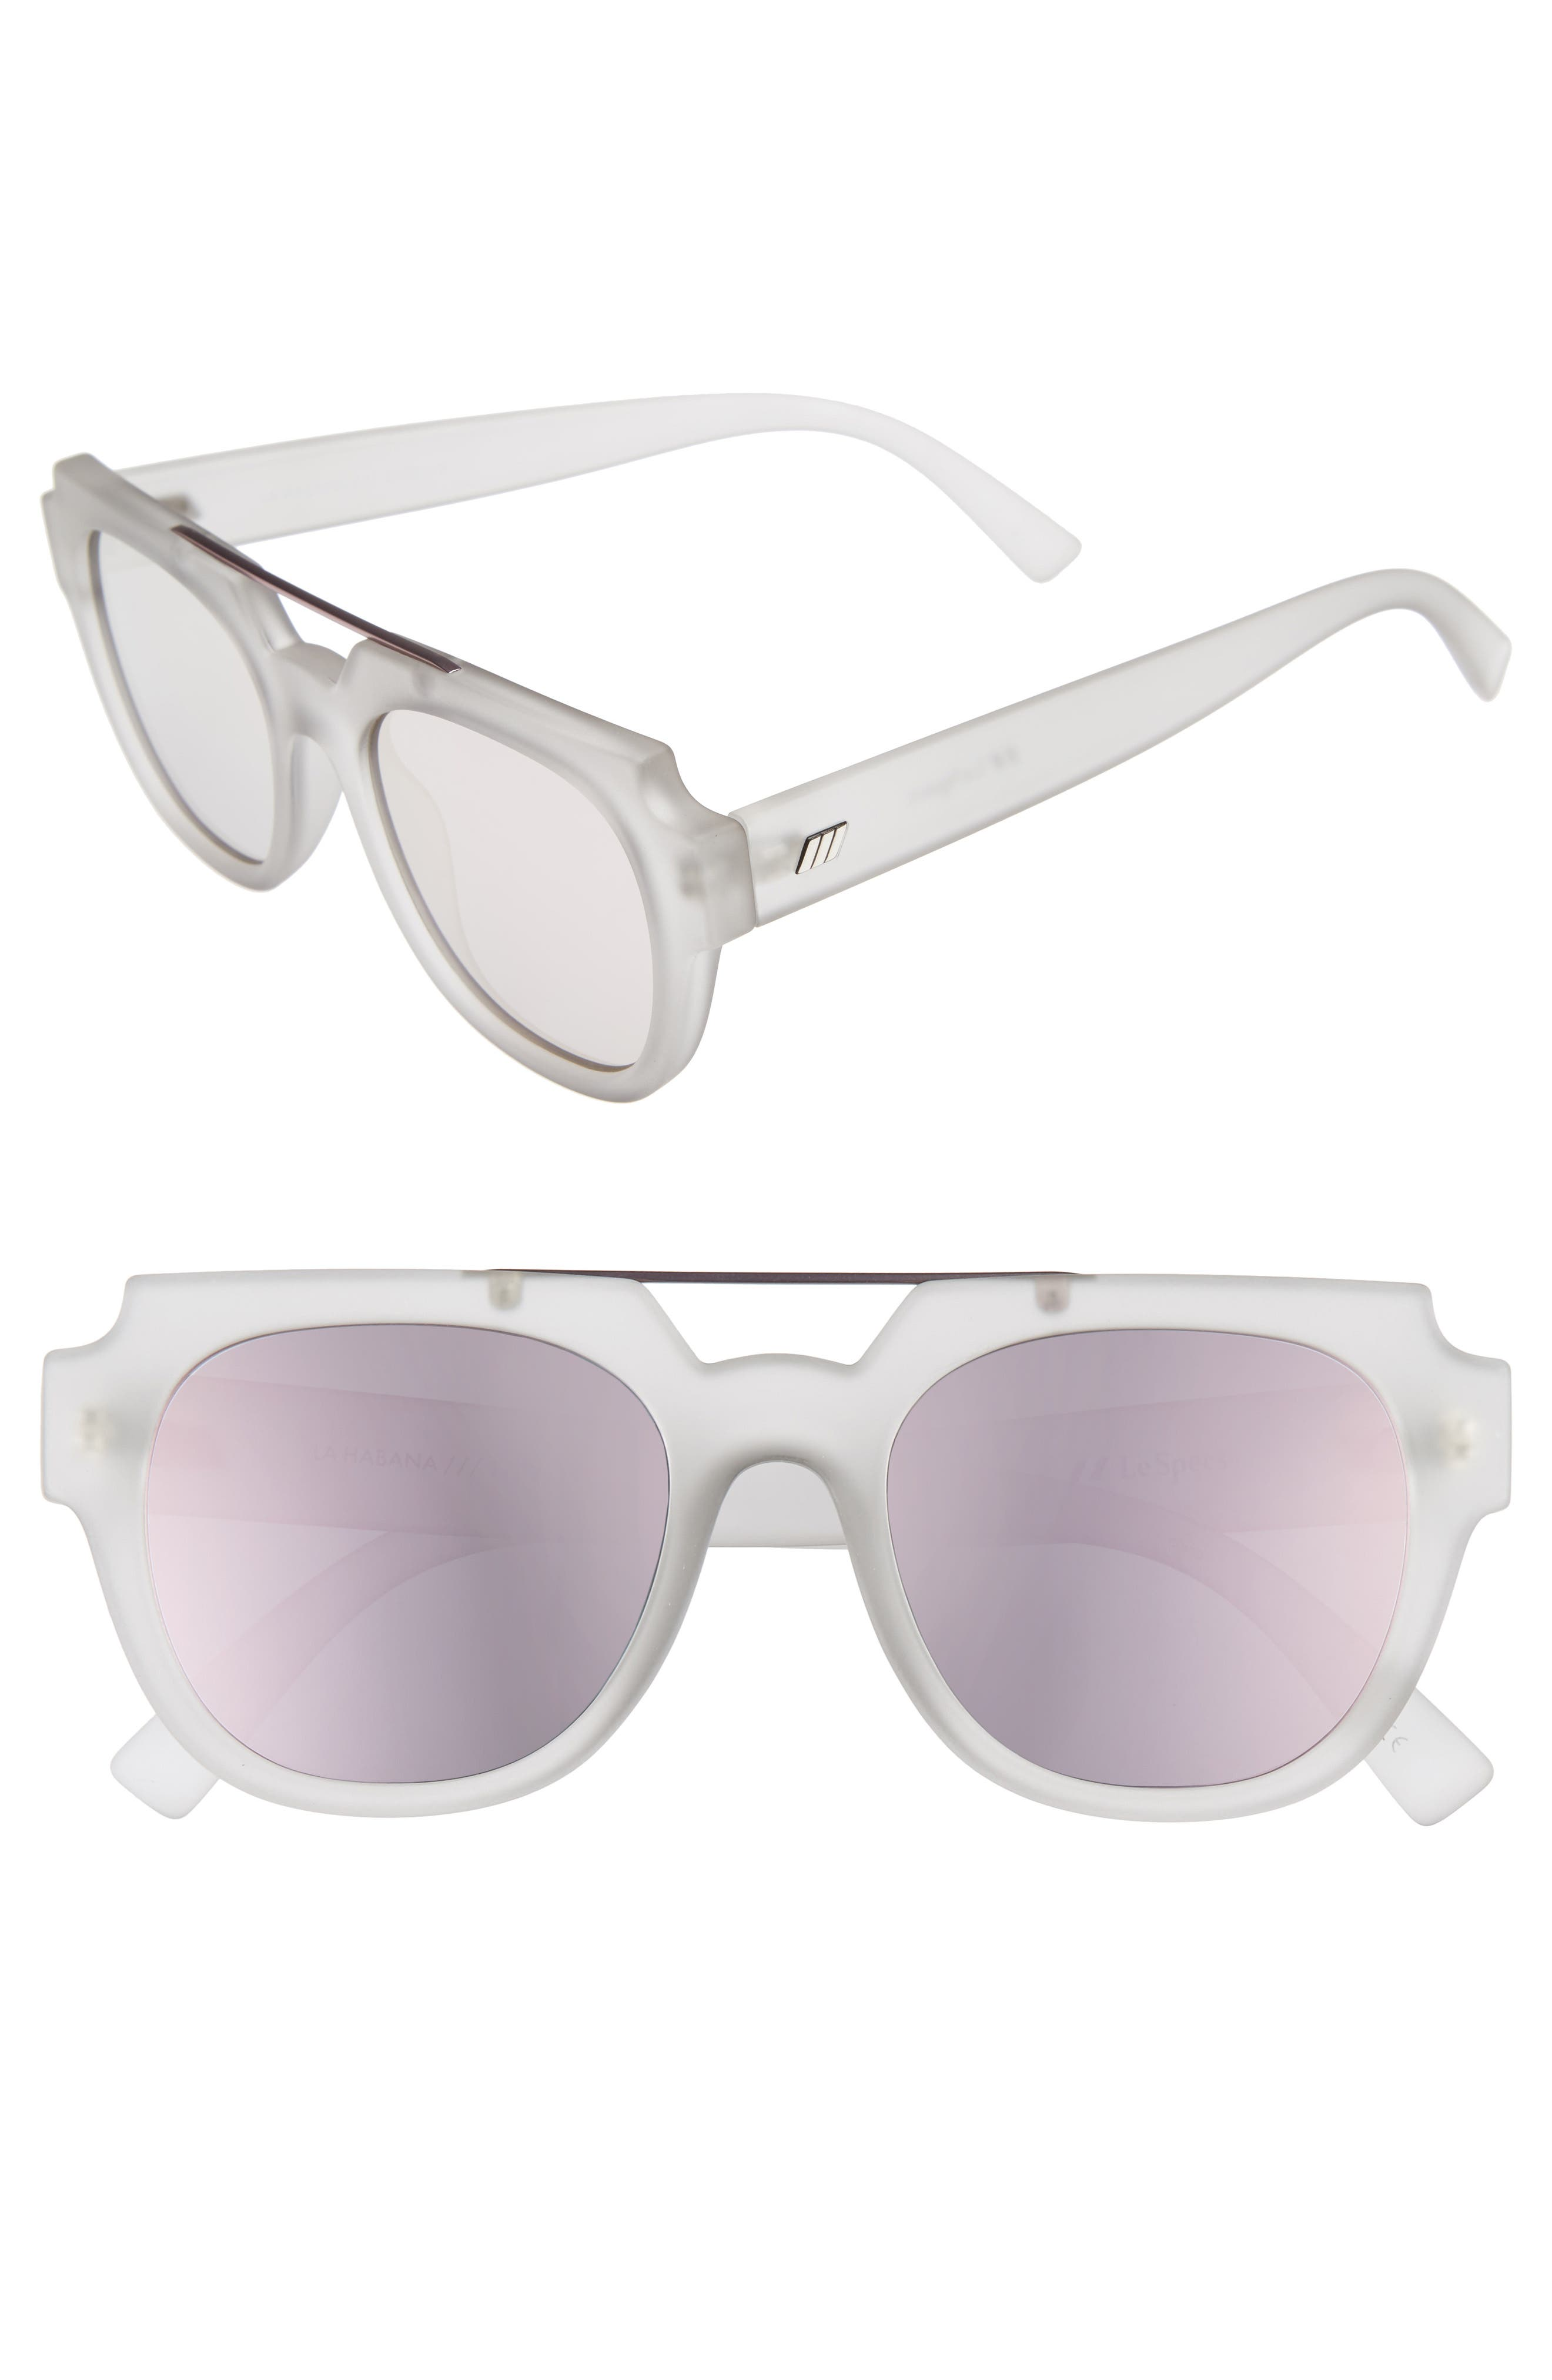 LE SPECS La Habana 52mm Retro Sunglasses